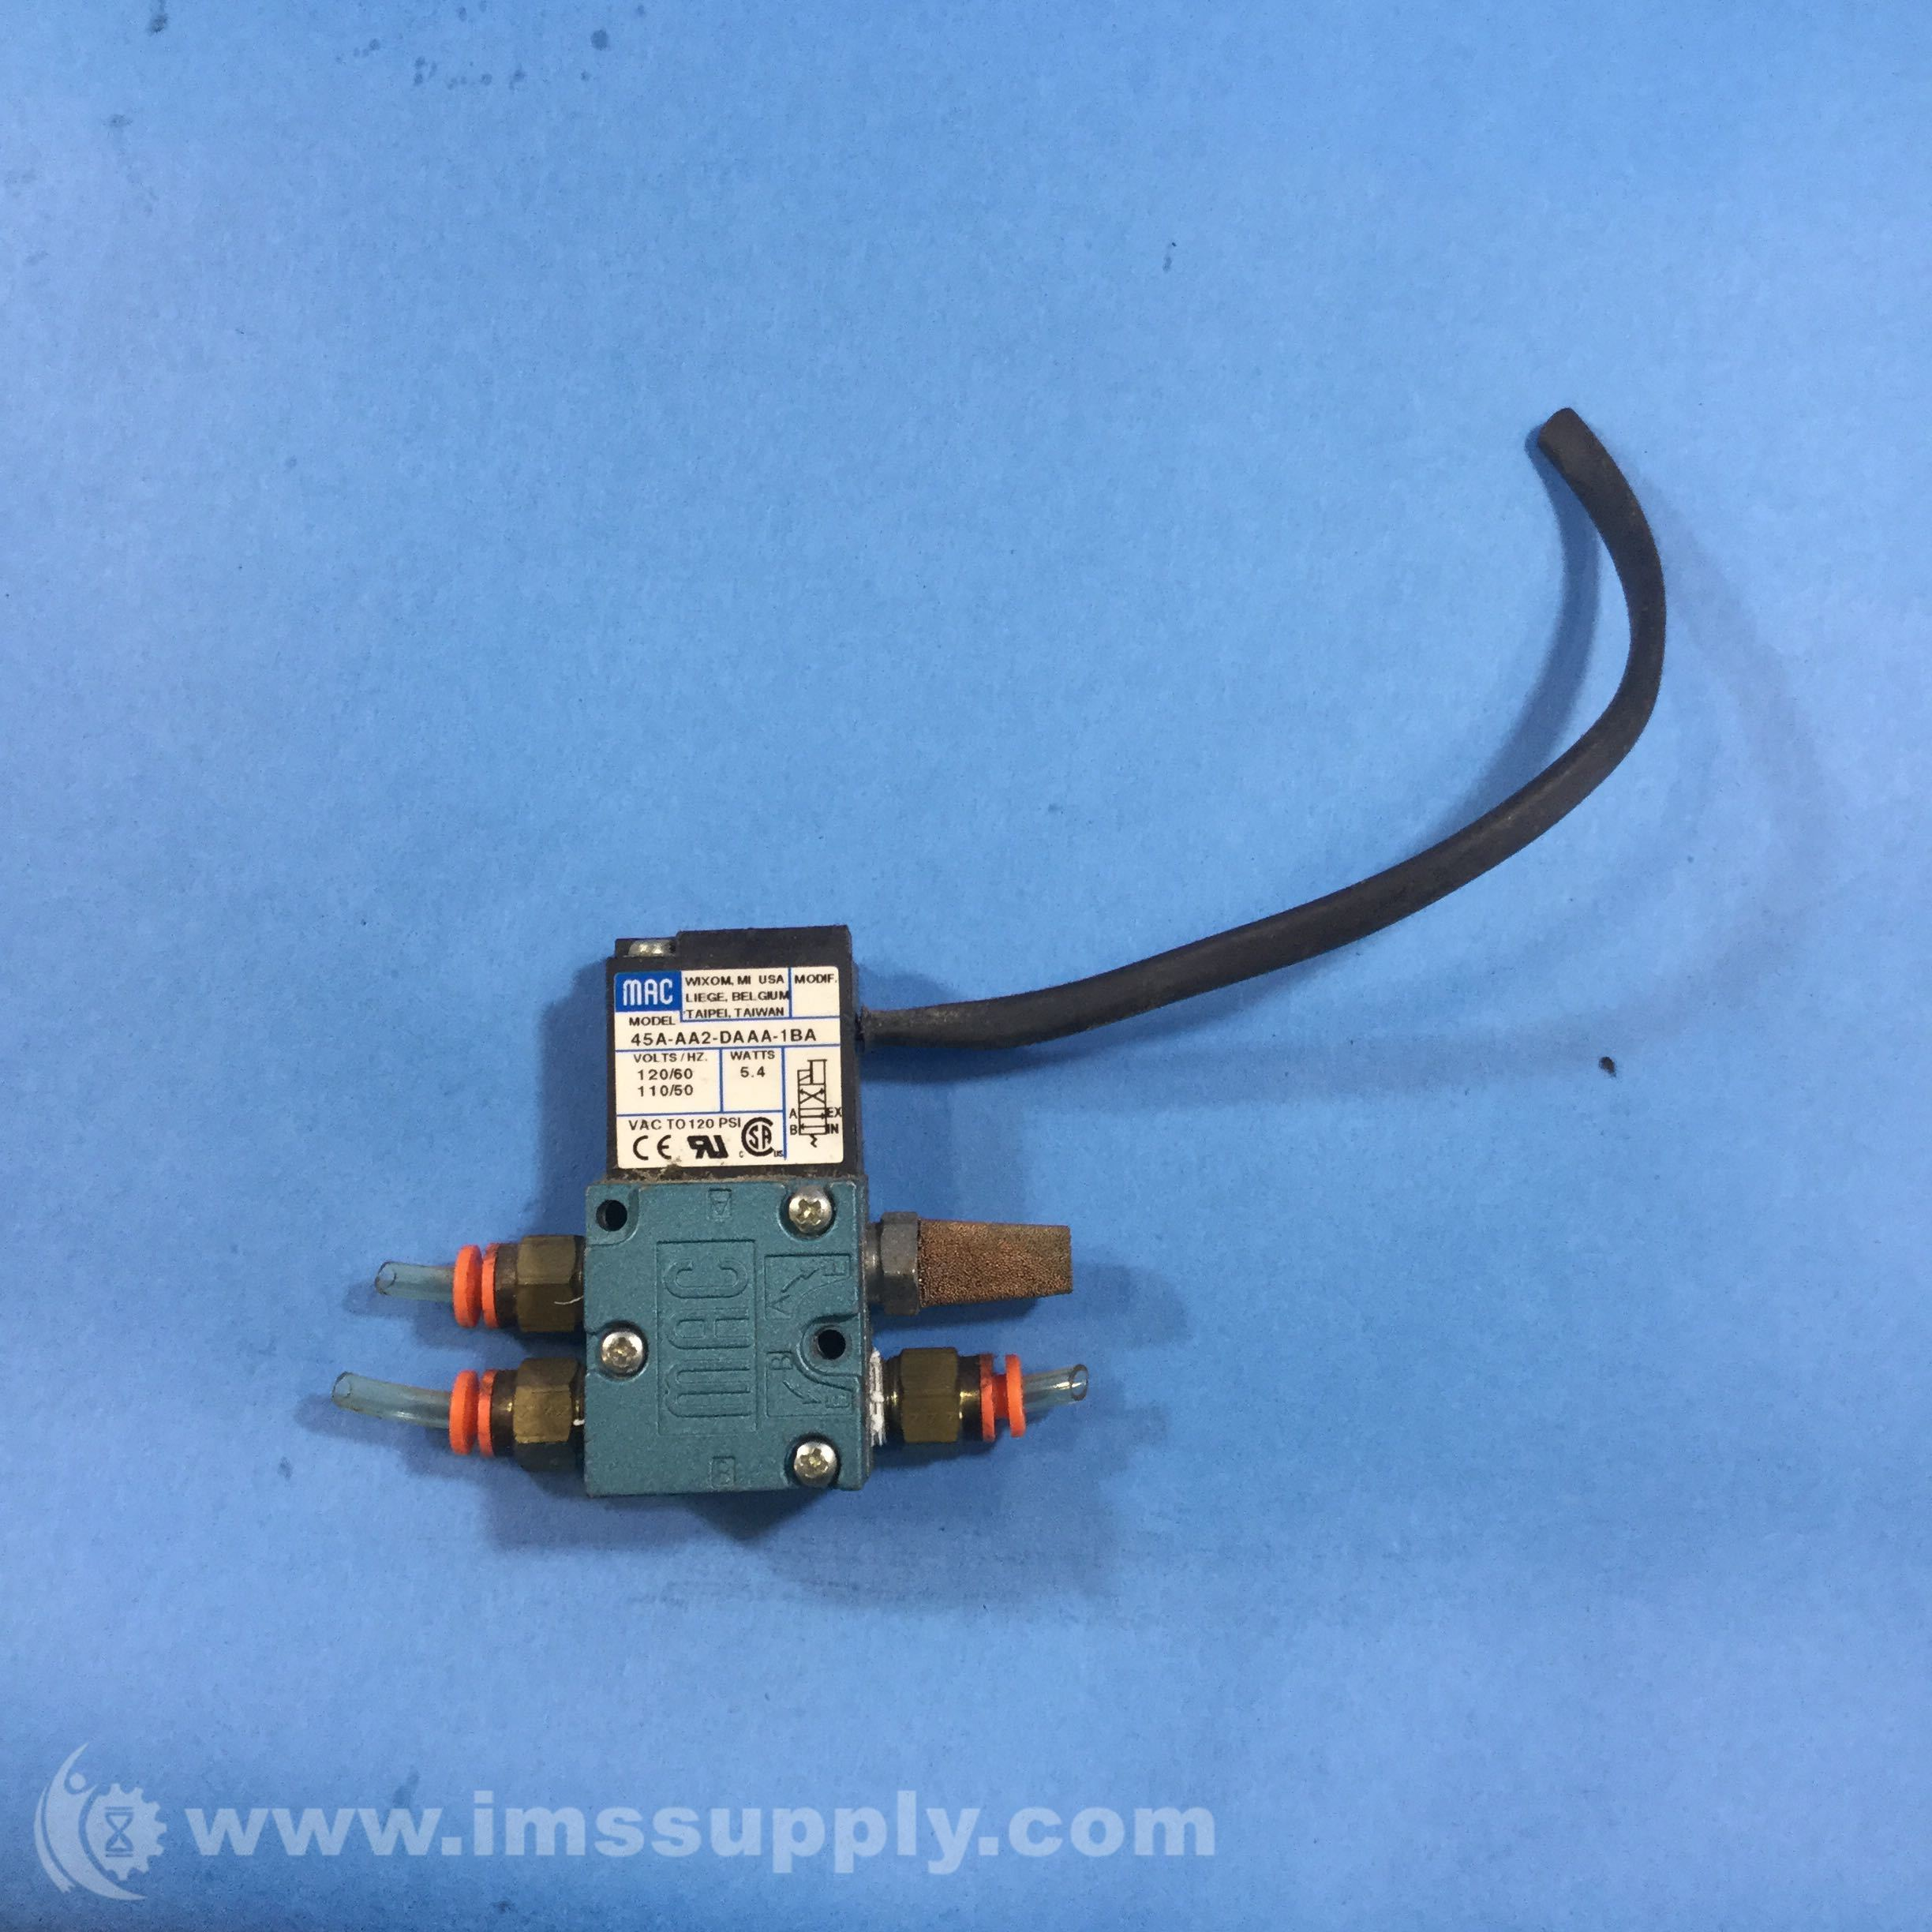 Mac Valves Inc 45a Aa2 Daaa 1ba Solenoid Valve Ims Supply Wiring